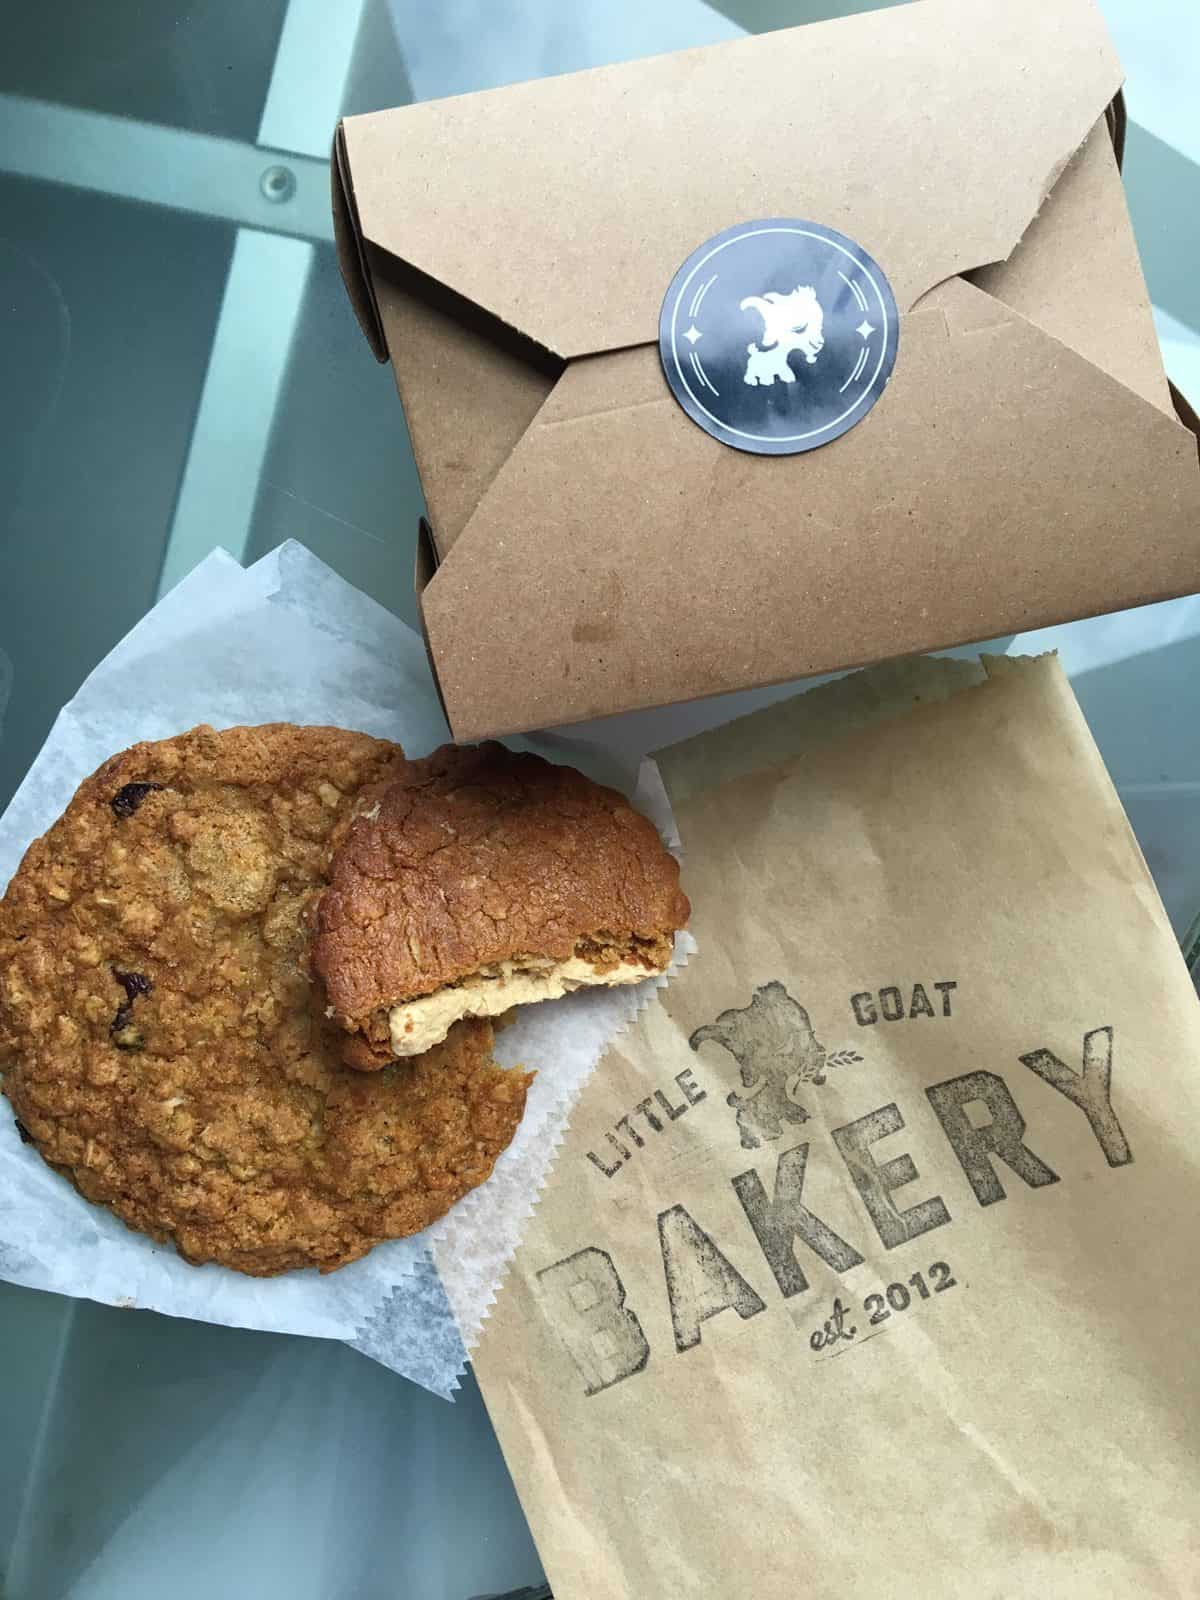 Free oatmeal cookies from the Little Goat Bakery in Chicago